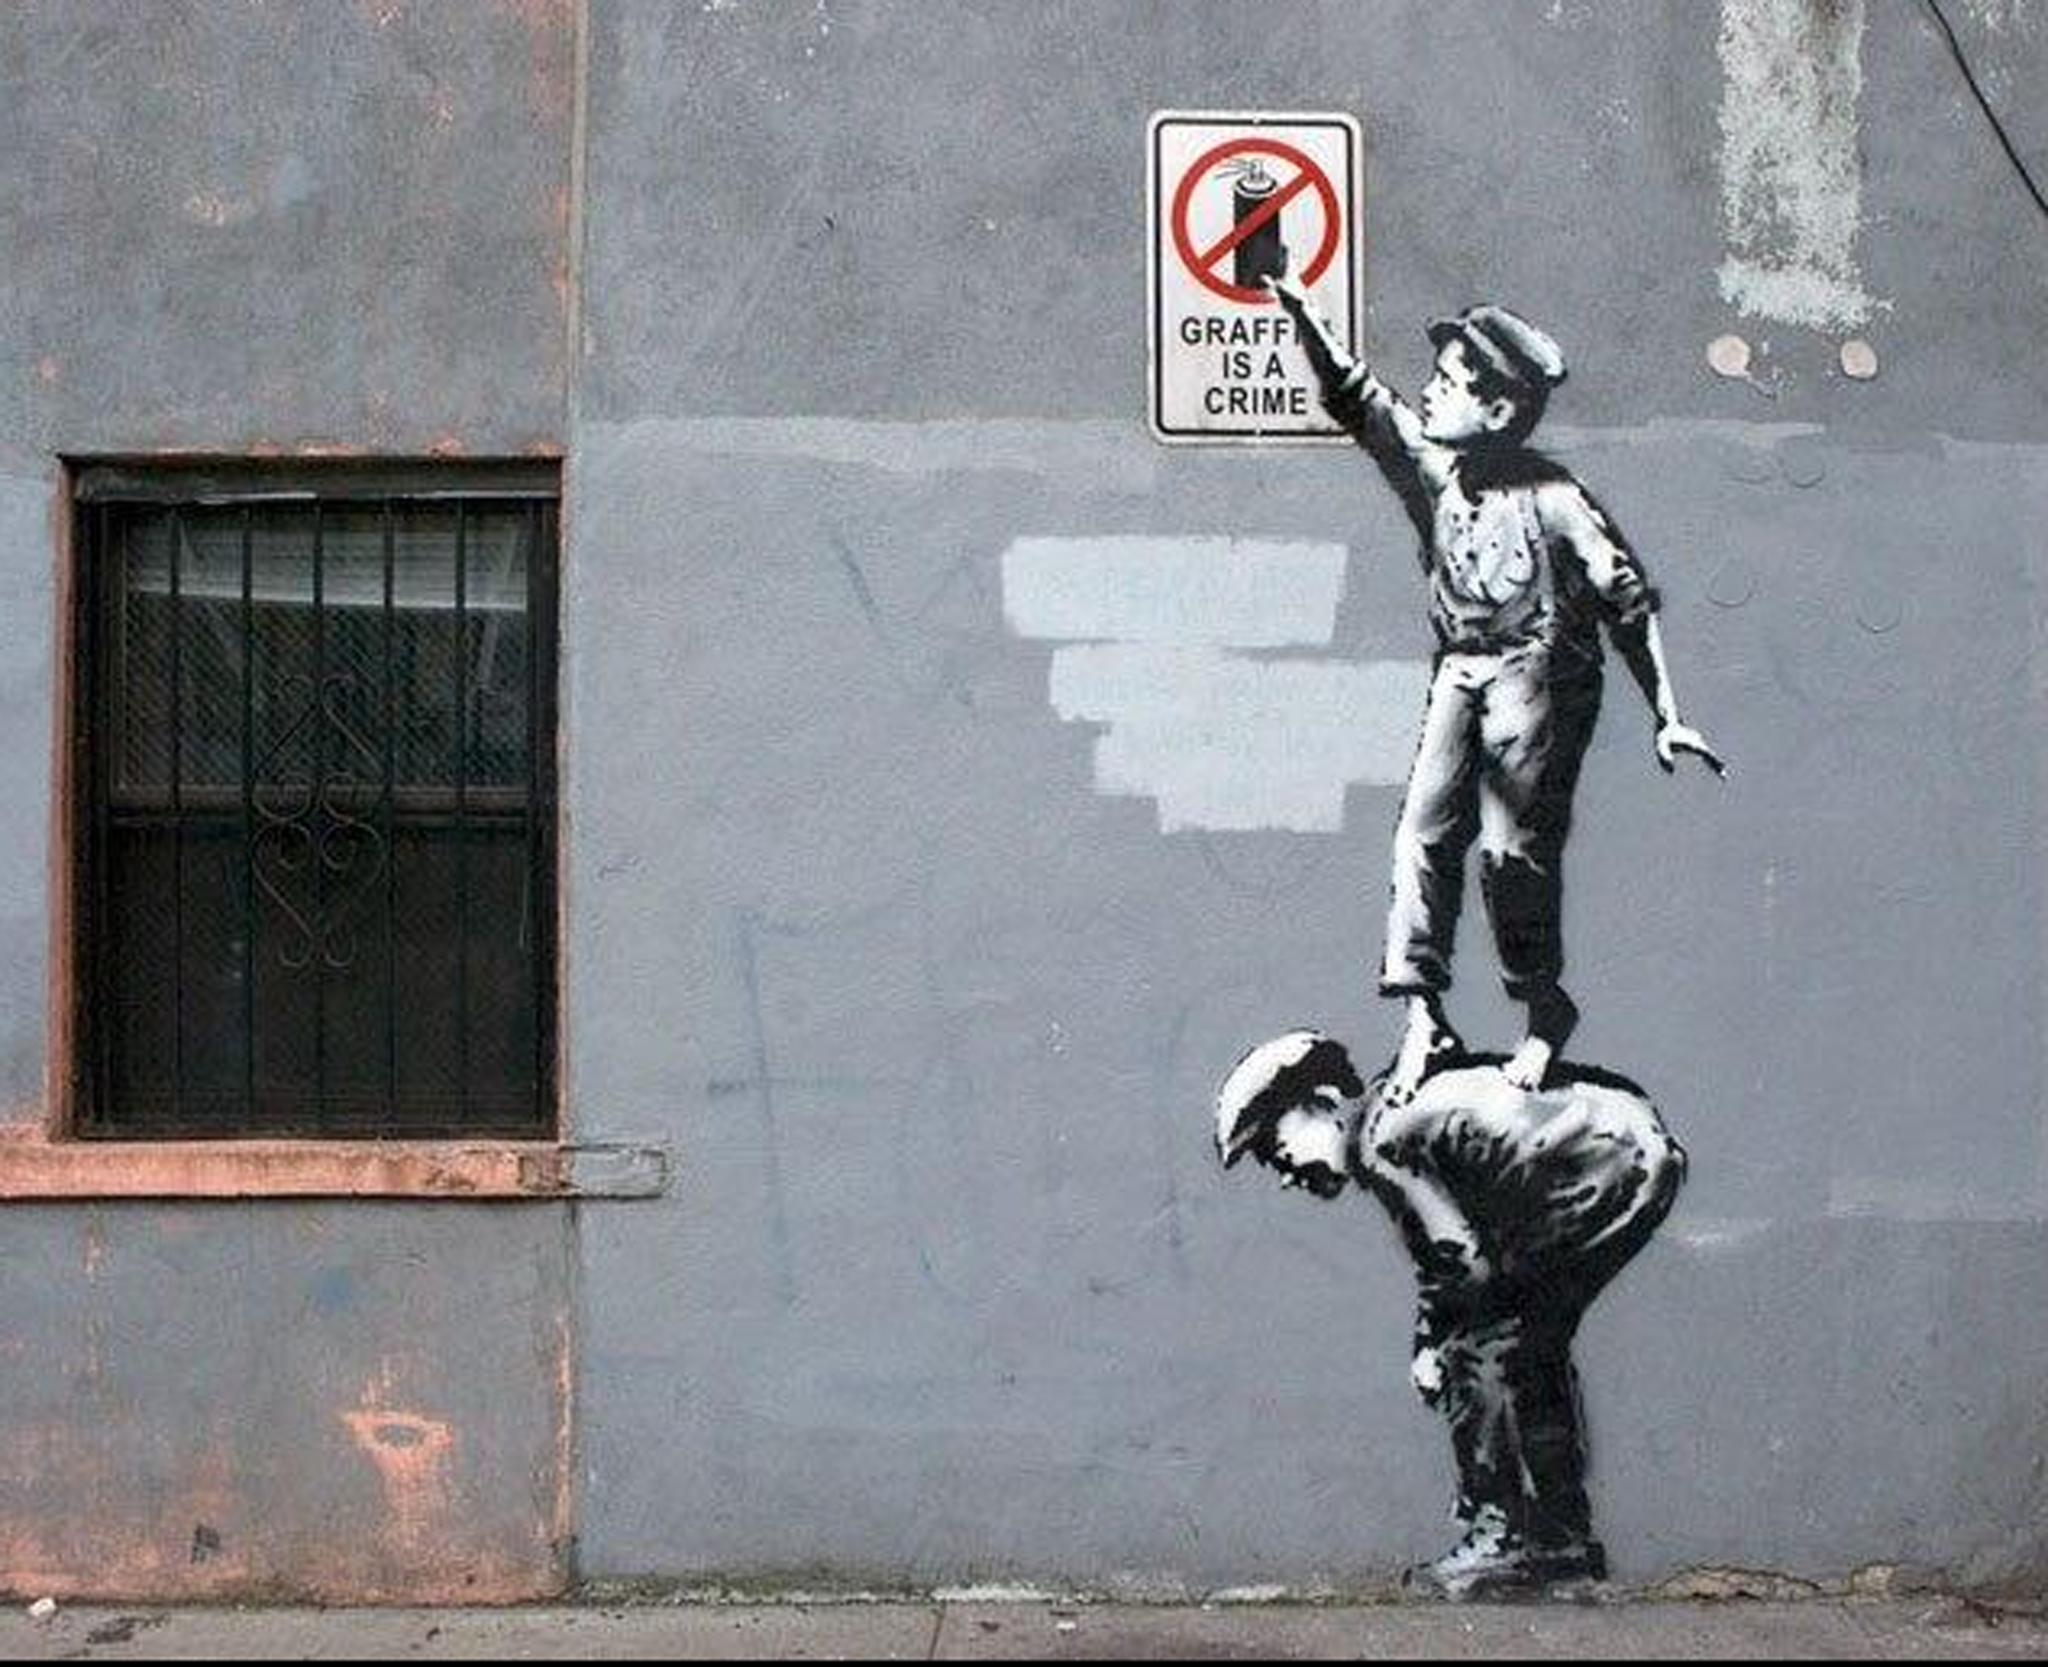 Latest Banksy Graffiti New Banksy Art In New York Painted Over After One Day | The